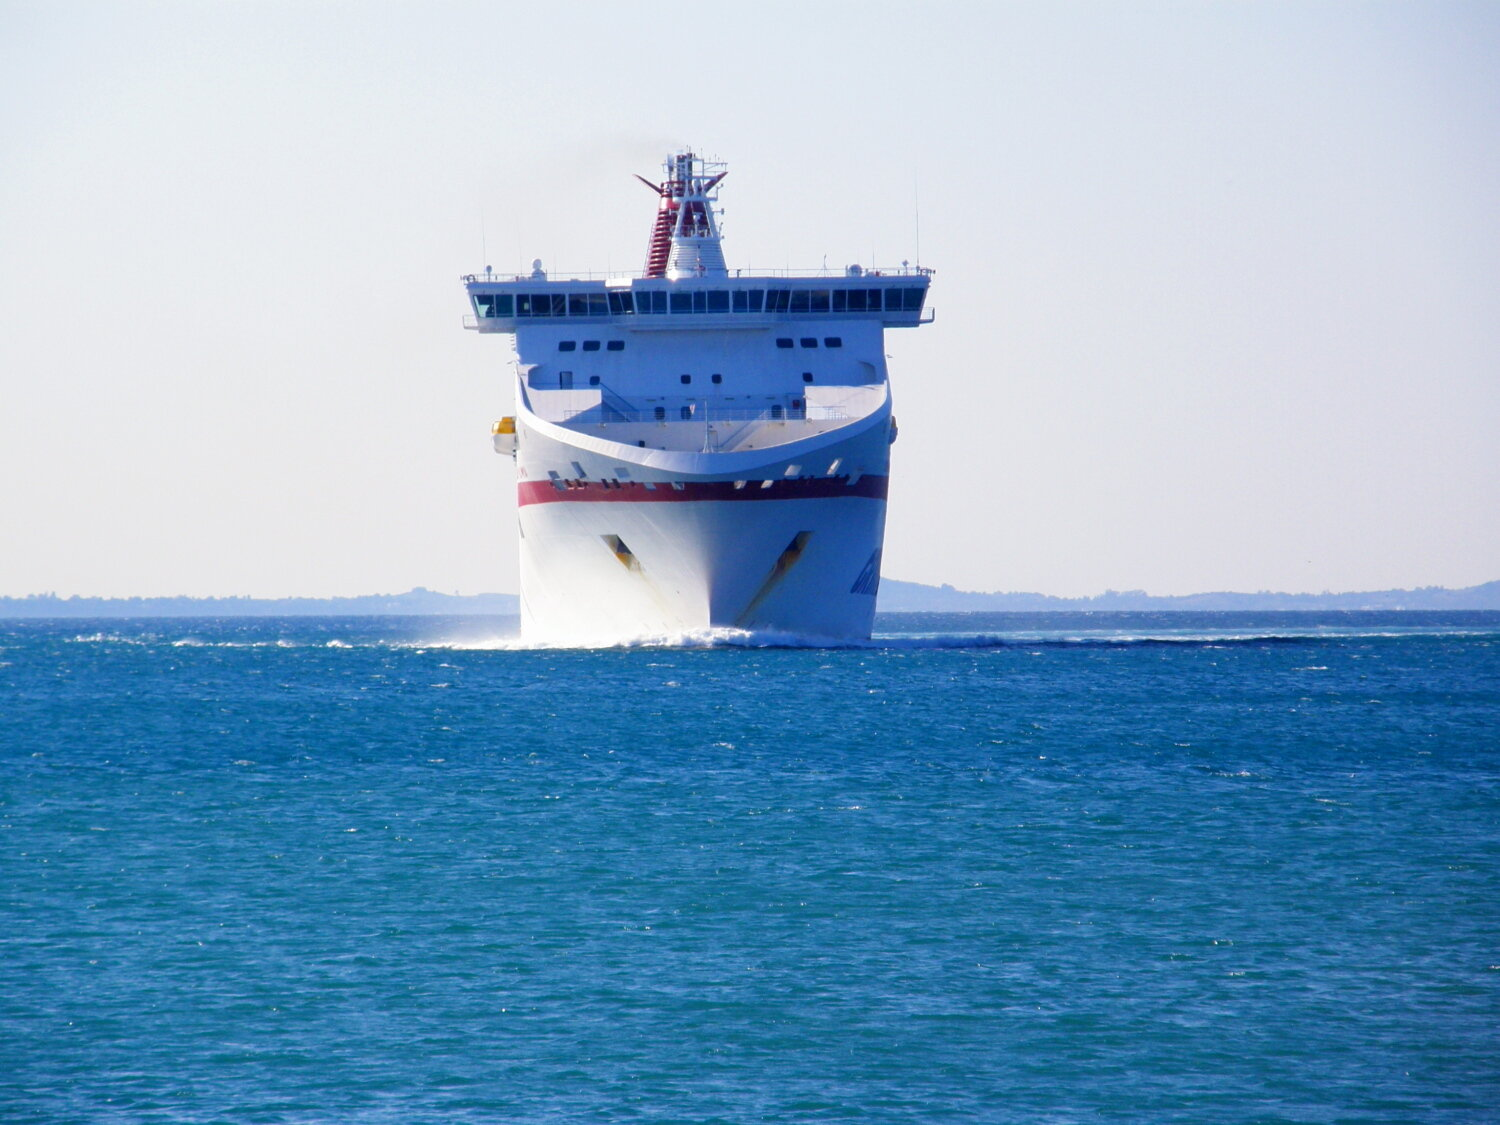 cruise olympia arrival at patra 061120 a